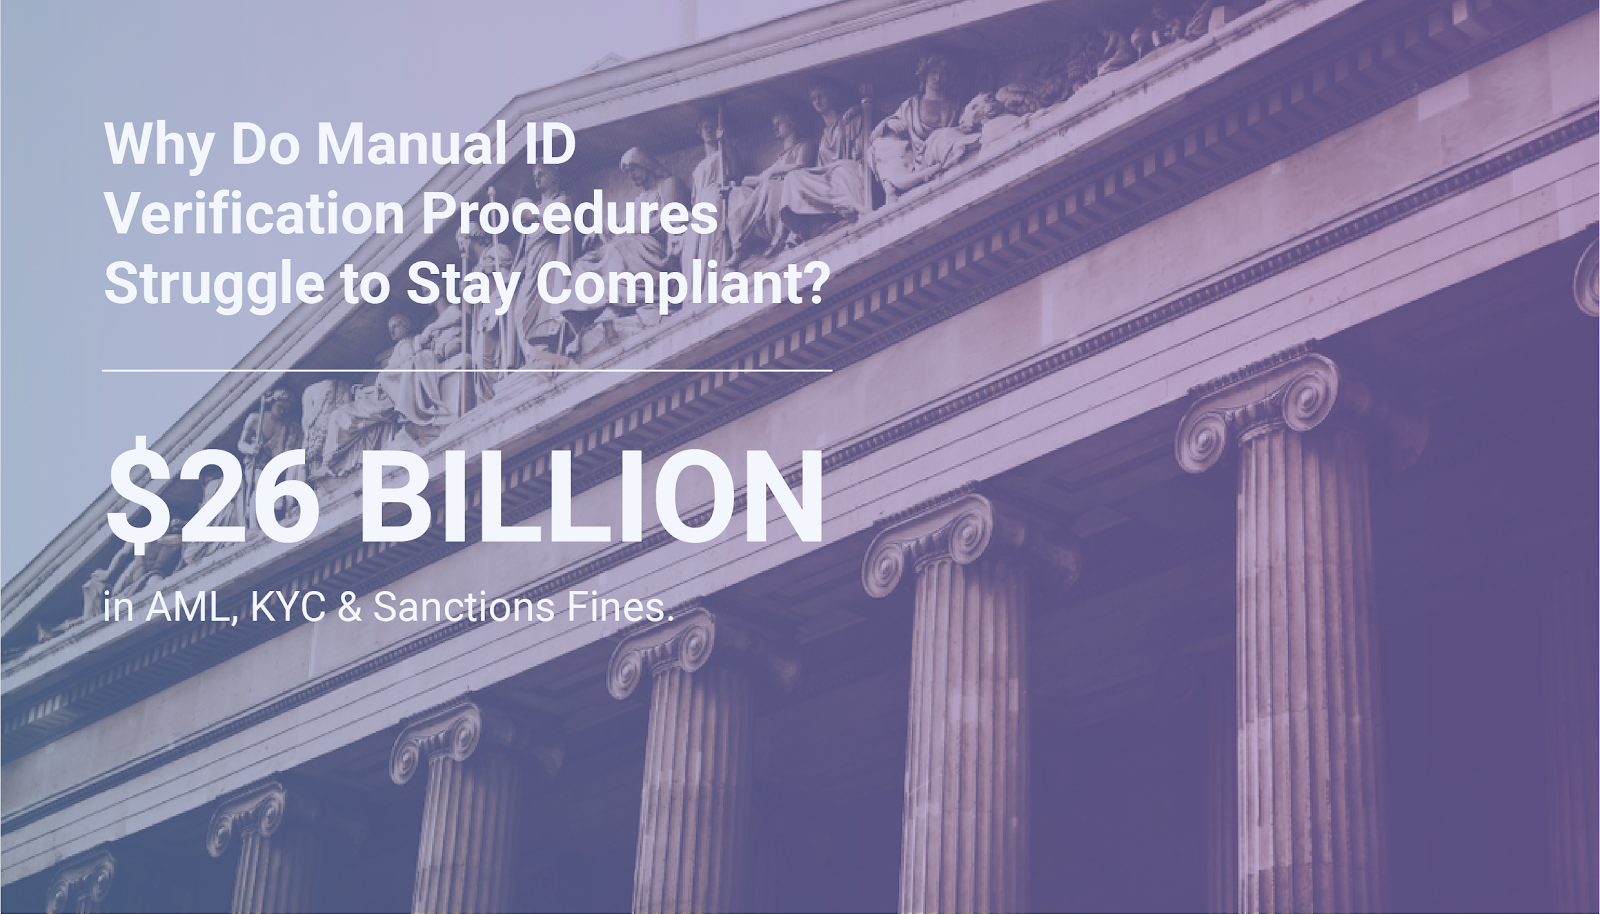 Why Do Manual ID Verification Procedures Struggle to Stay Compliant?